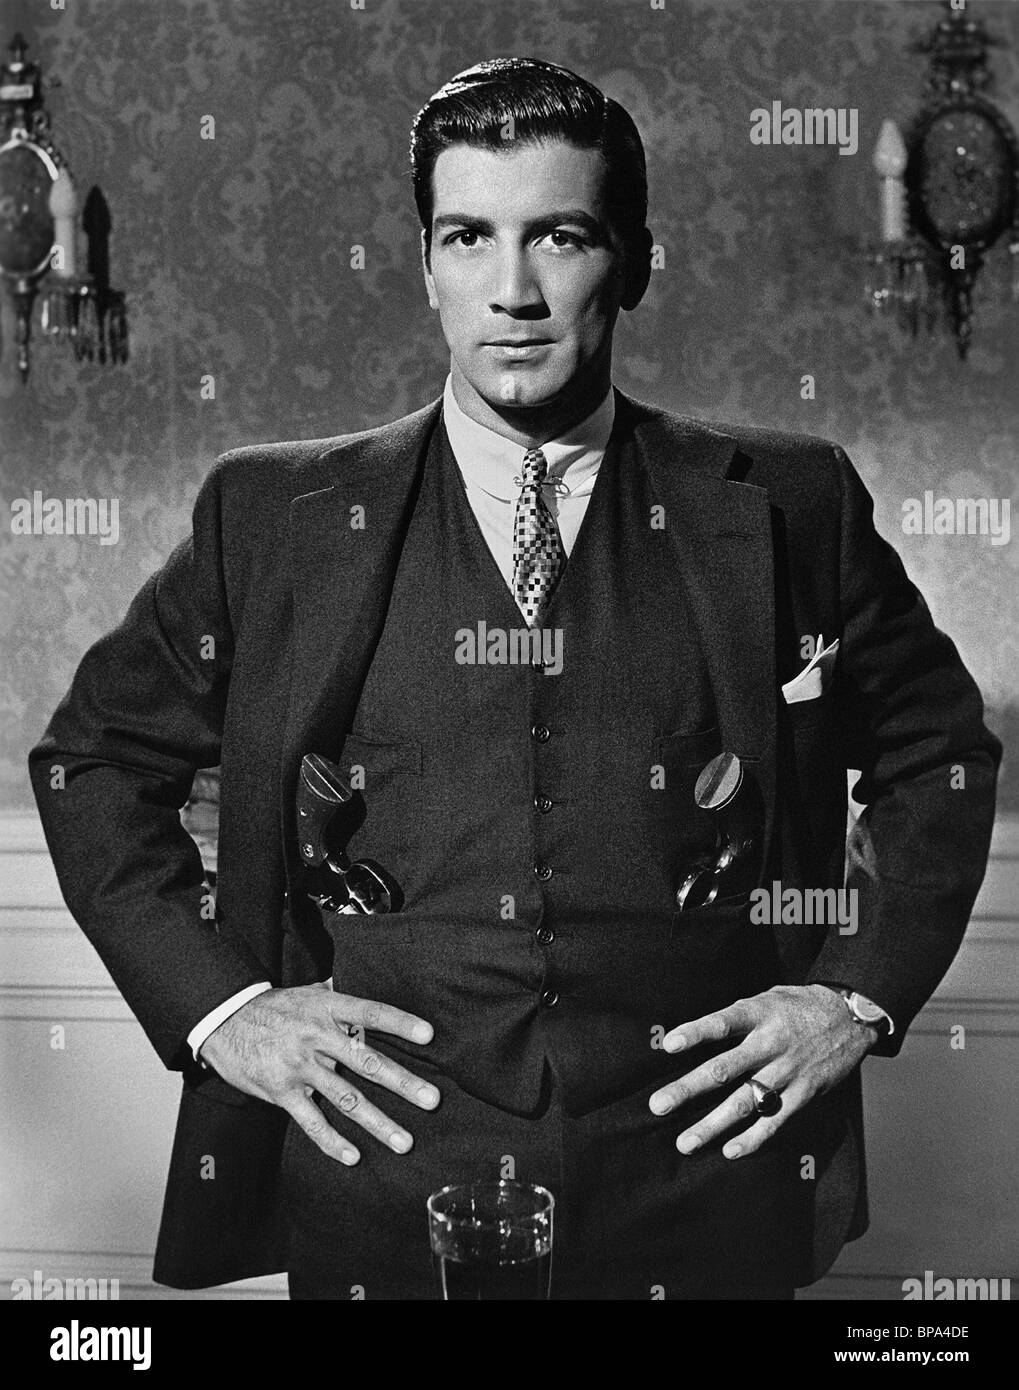 RAY DANTON PORTRAIT OF A MOBSTER (1961) - Stock Image